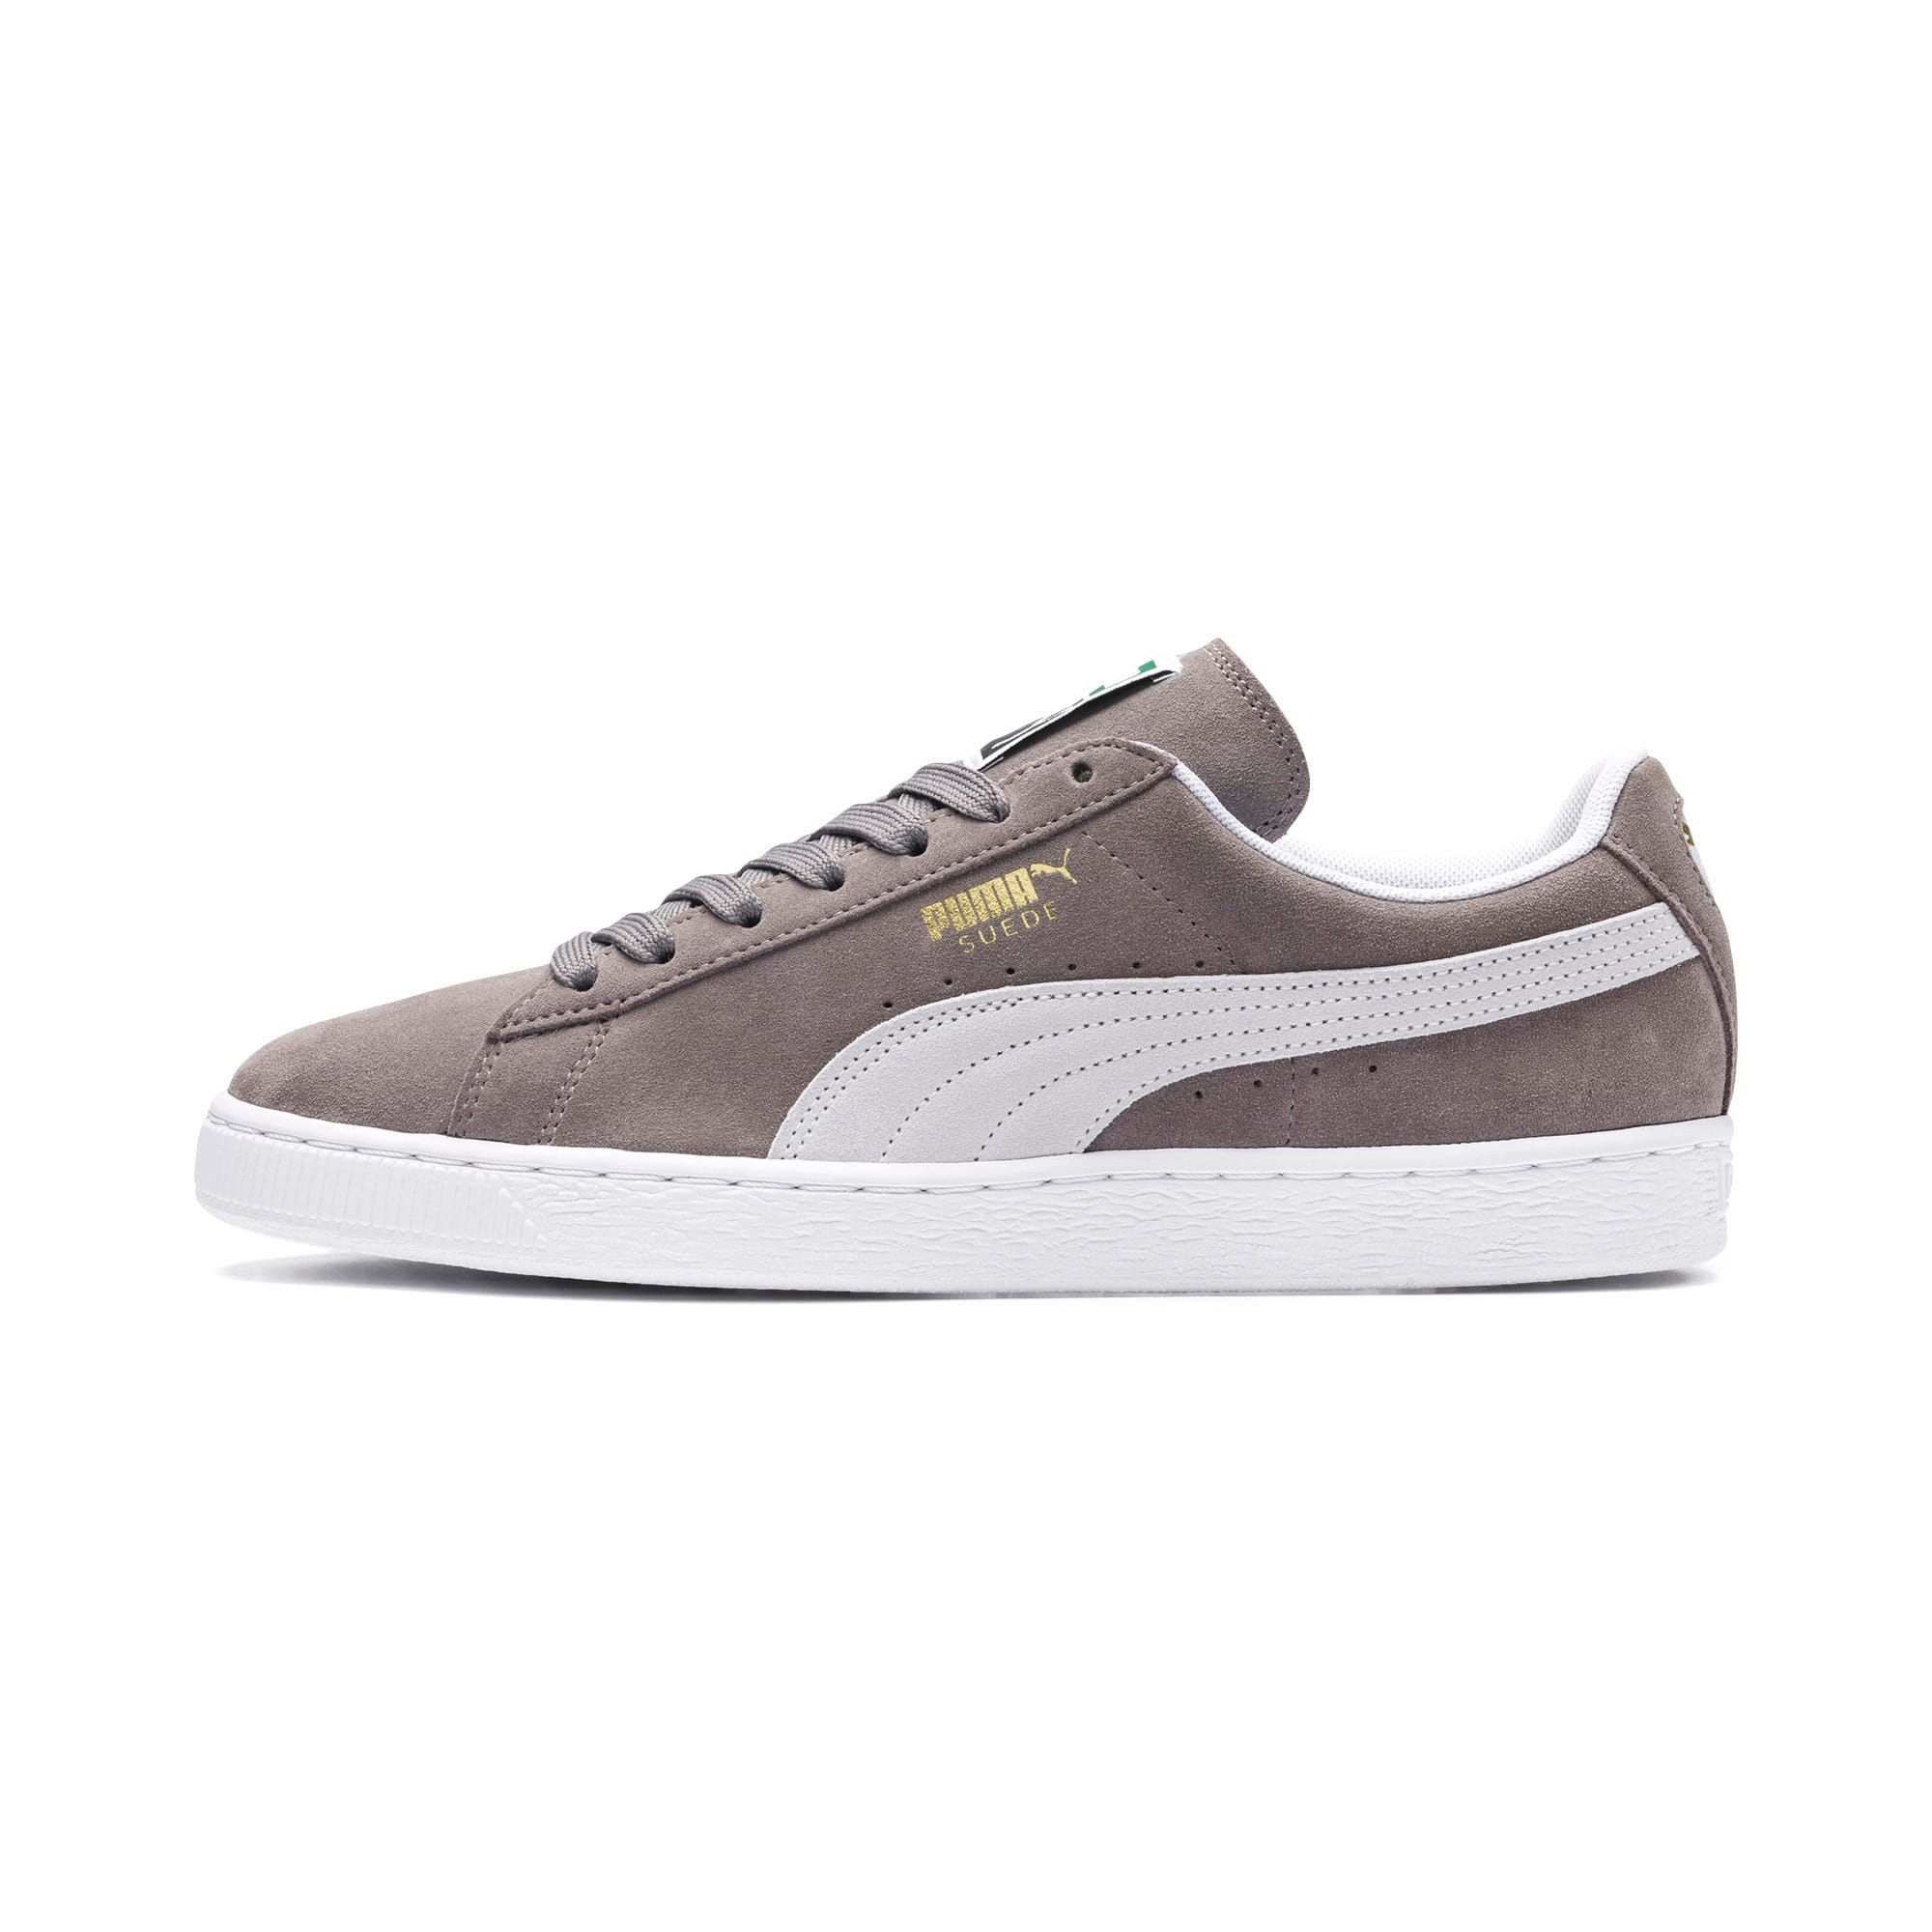 Men's PUMA Suede Classic+ Trainers in Steeple Grey/White size 11.5